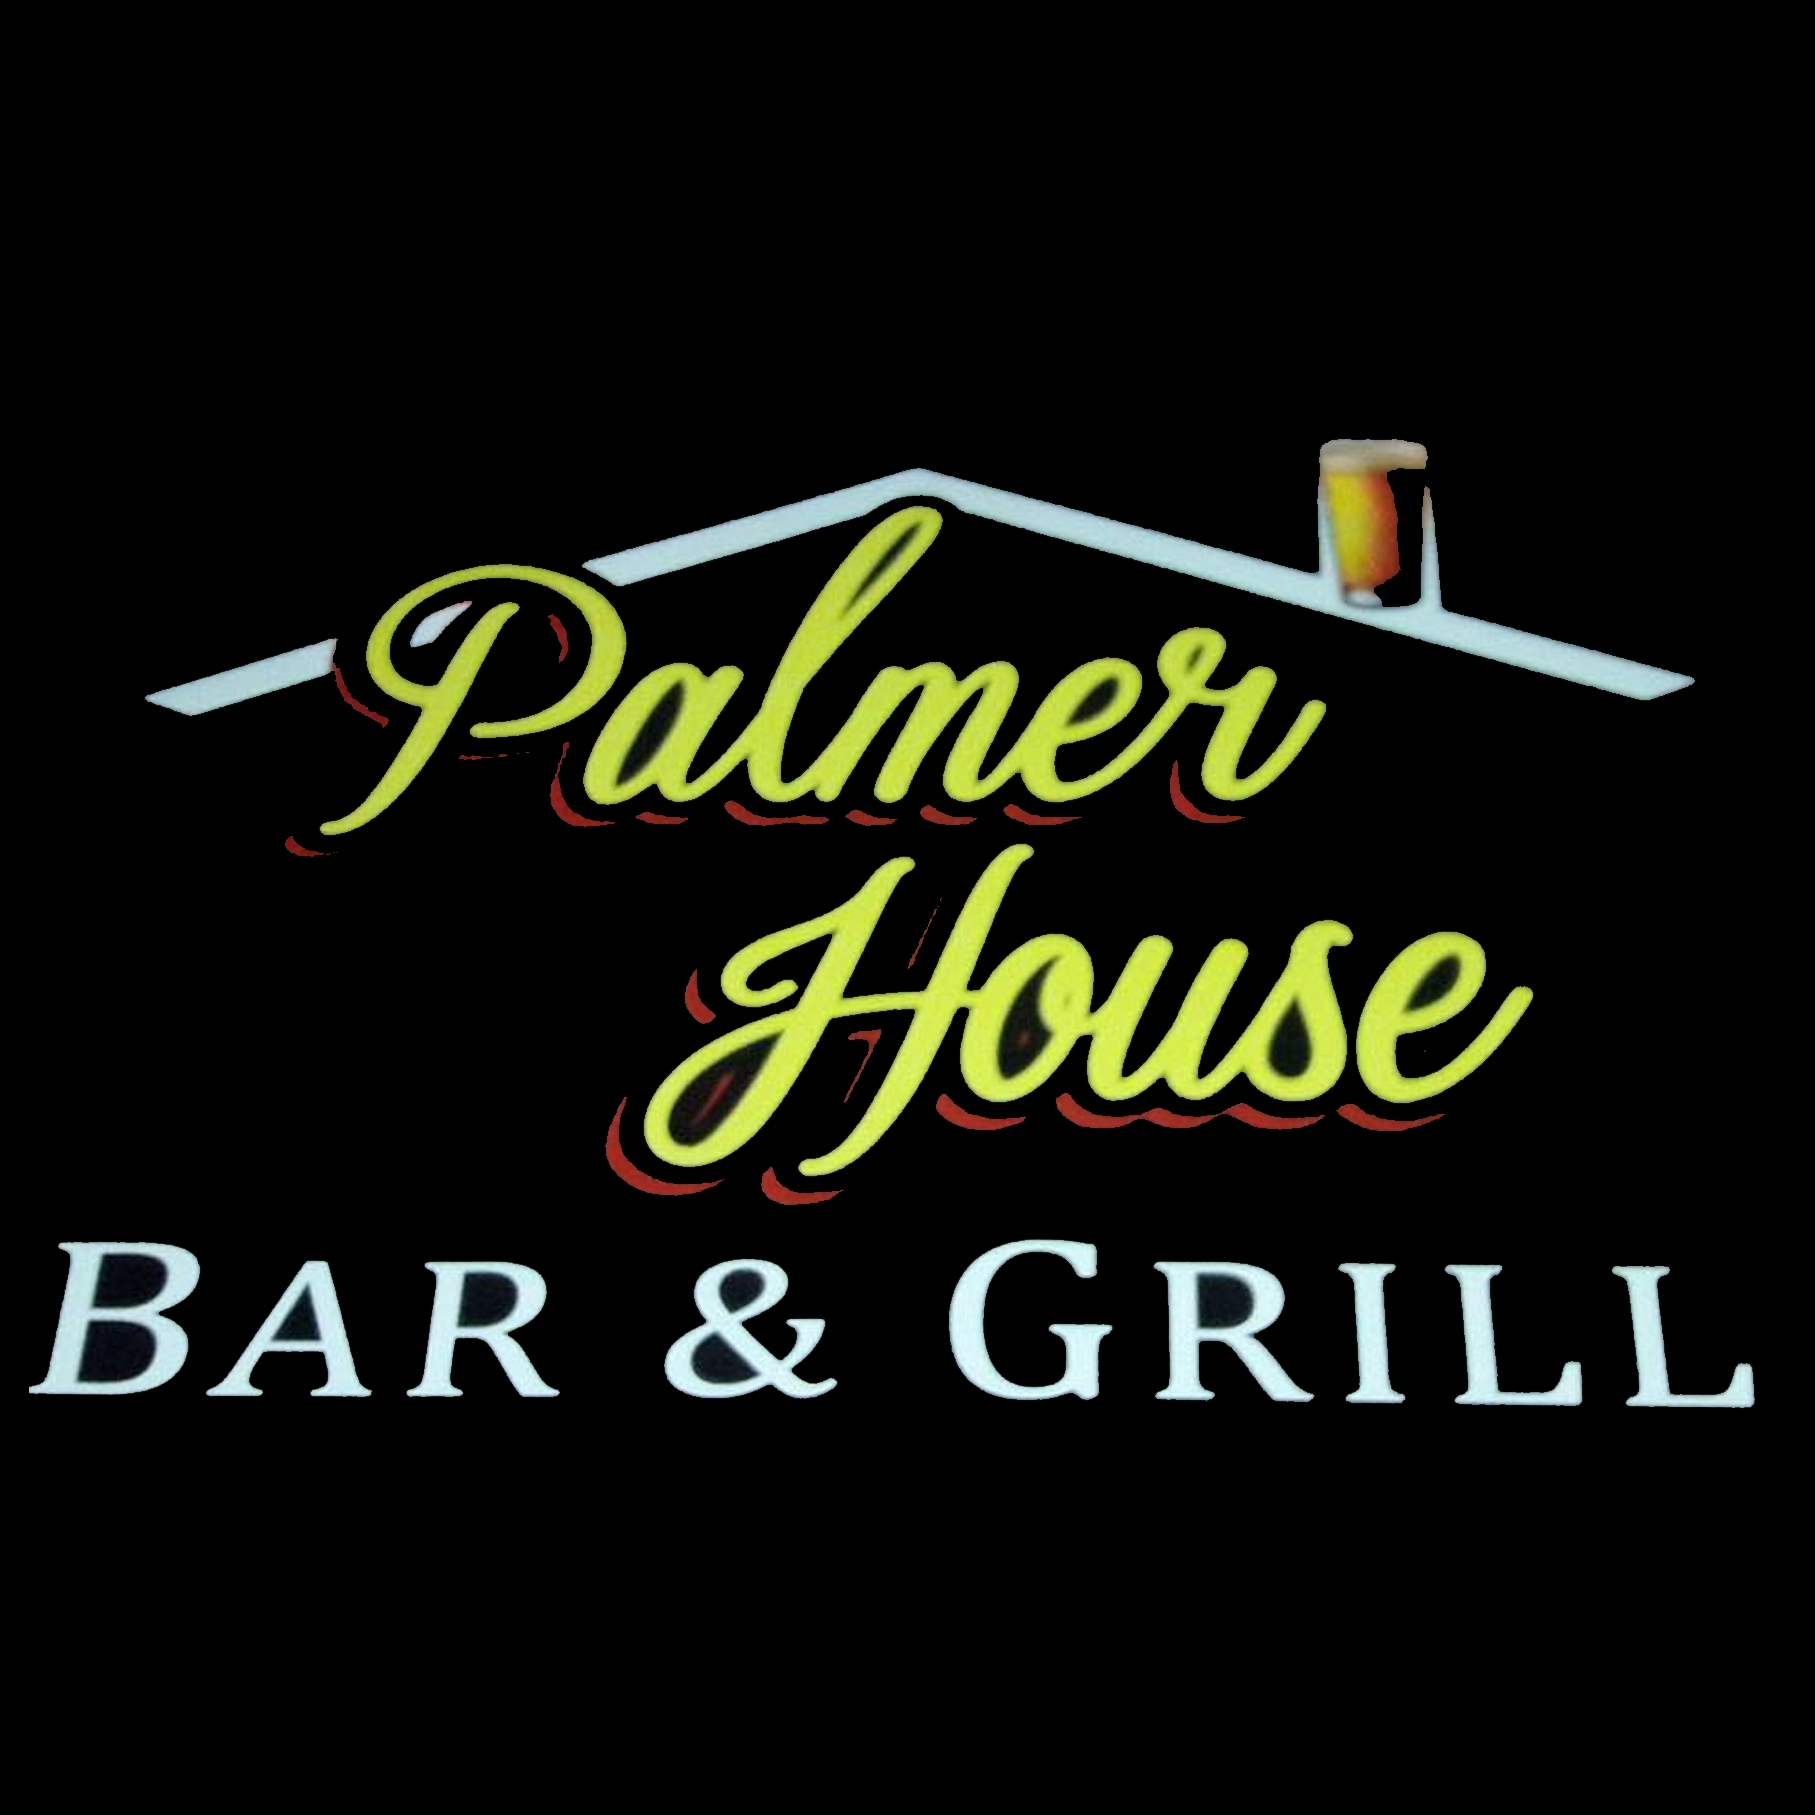 Palmer House Bar and Grill